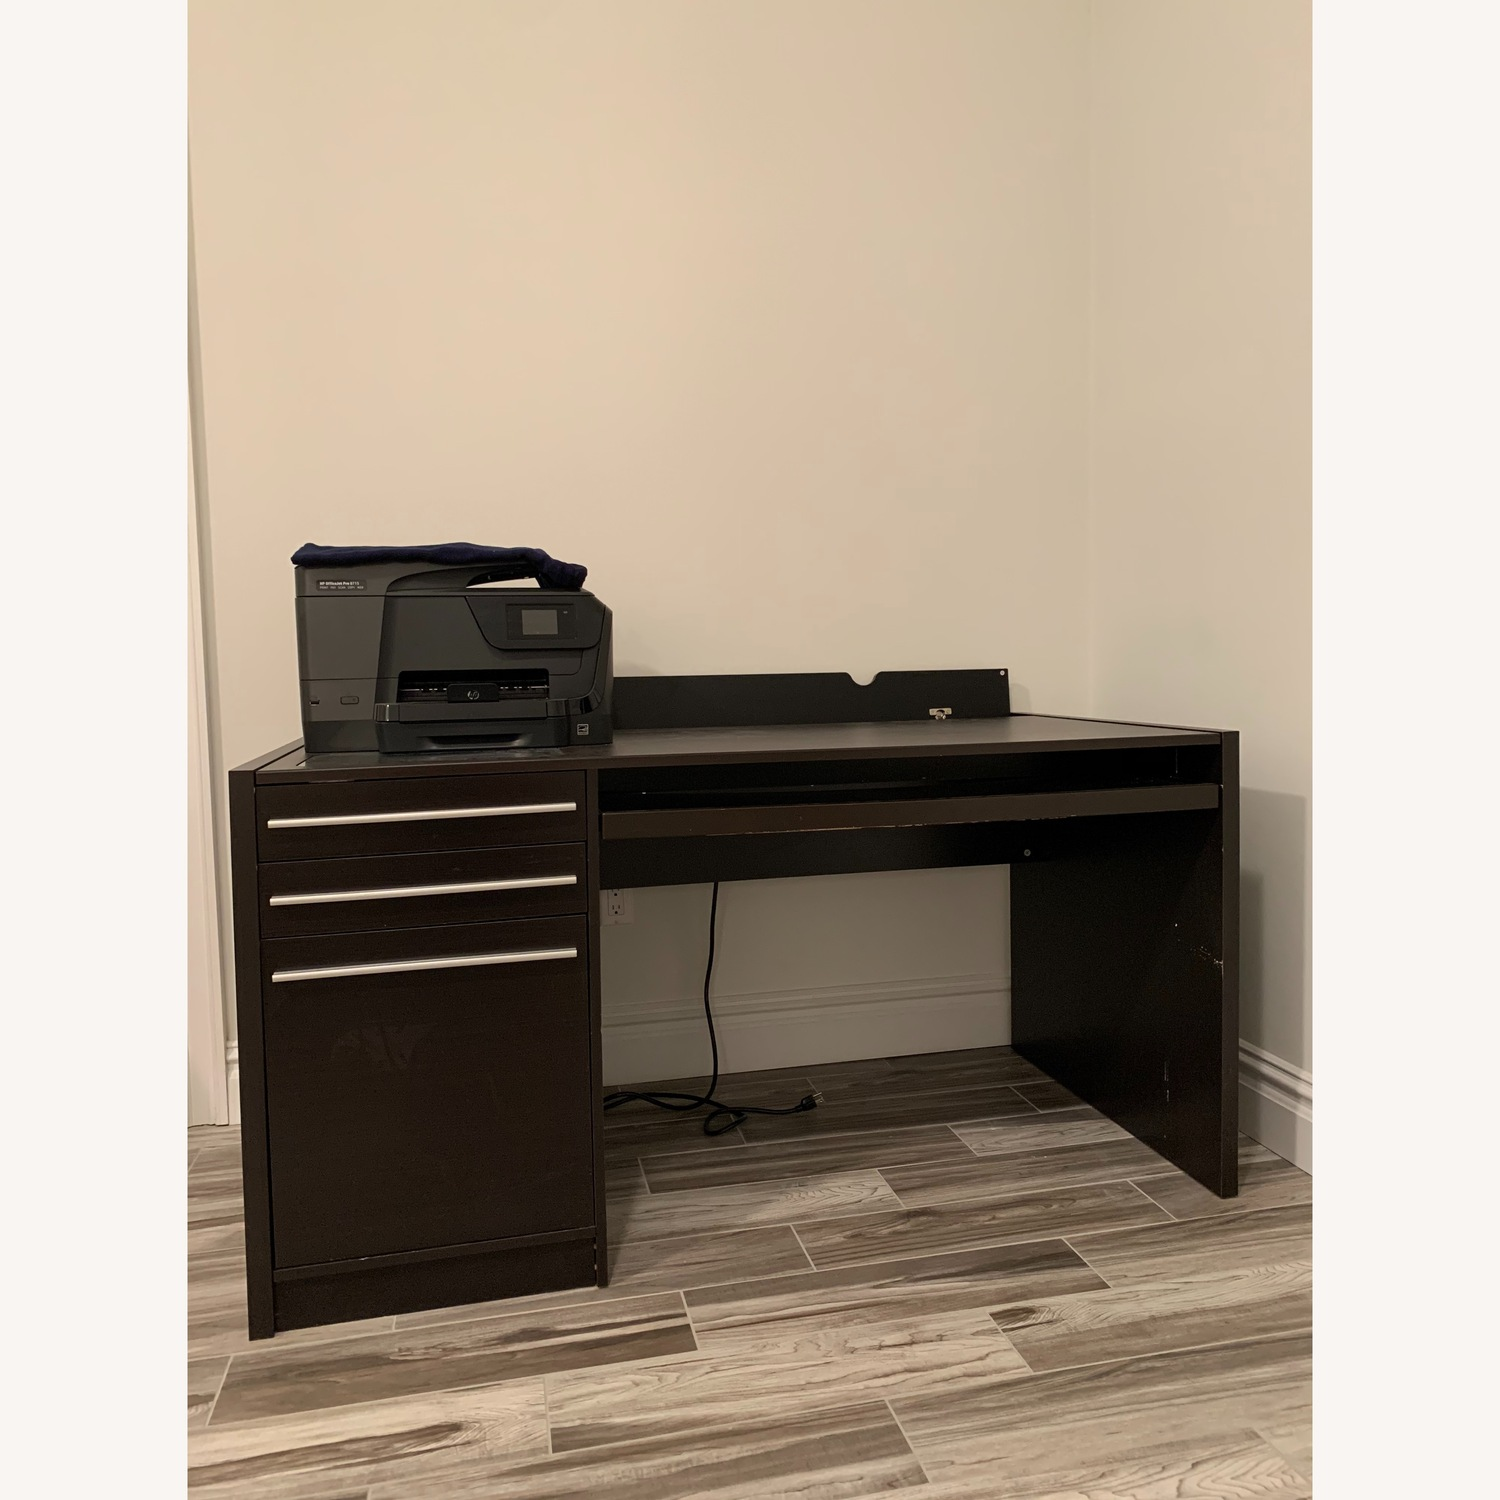 OFFICE DESK WITH MULTIPLE OUTLETS